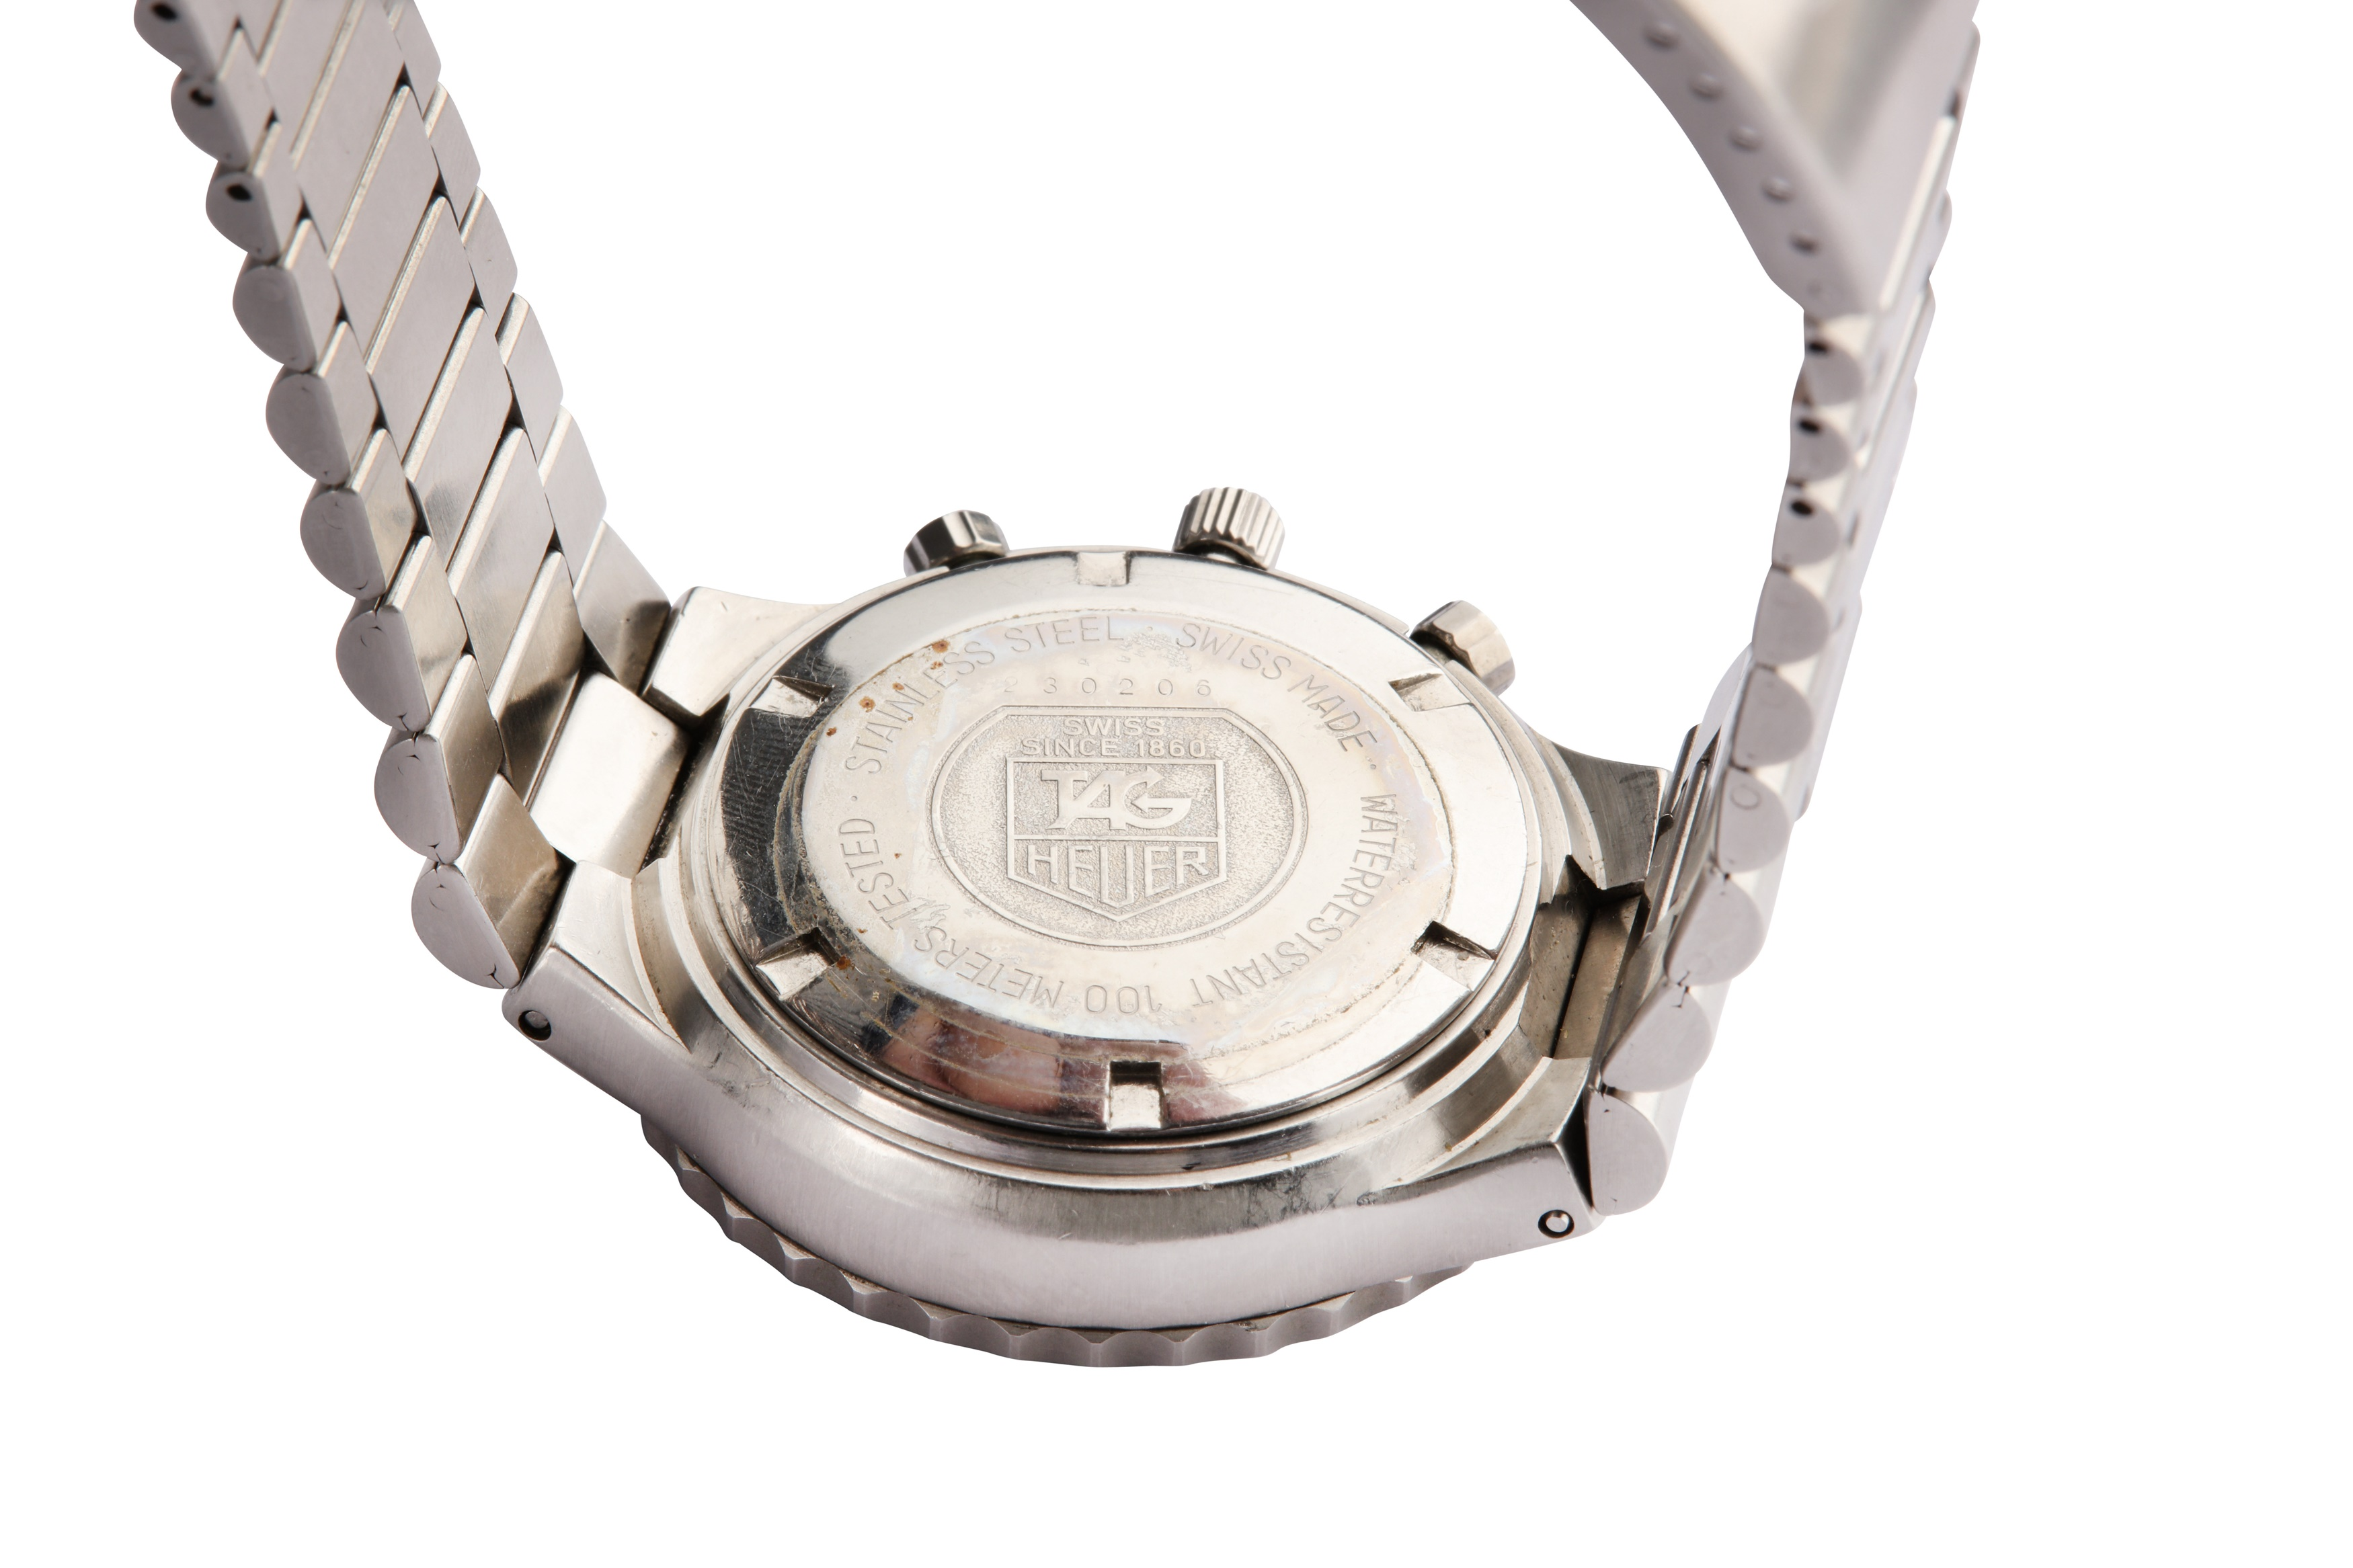 TAG HEUER. - Image 5 of 5